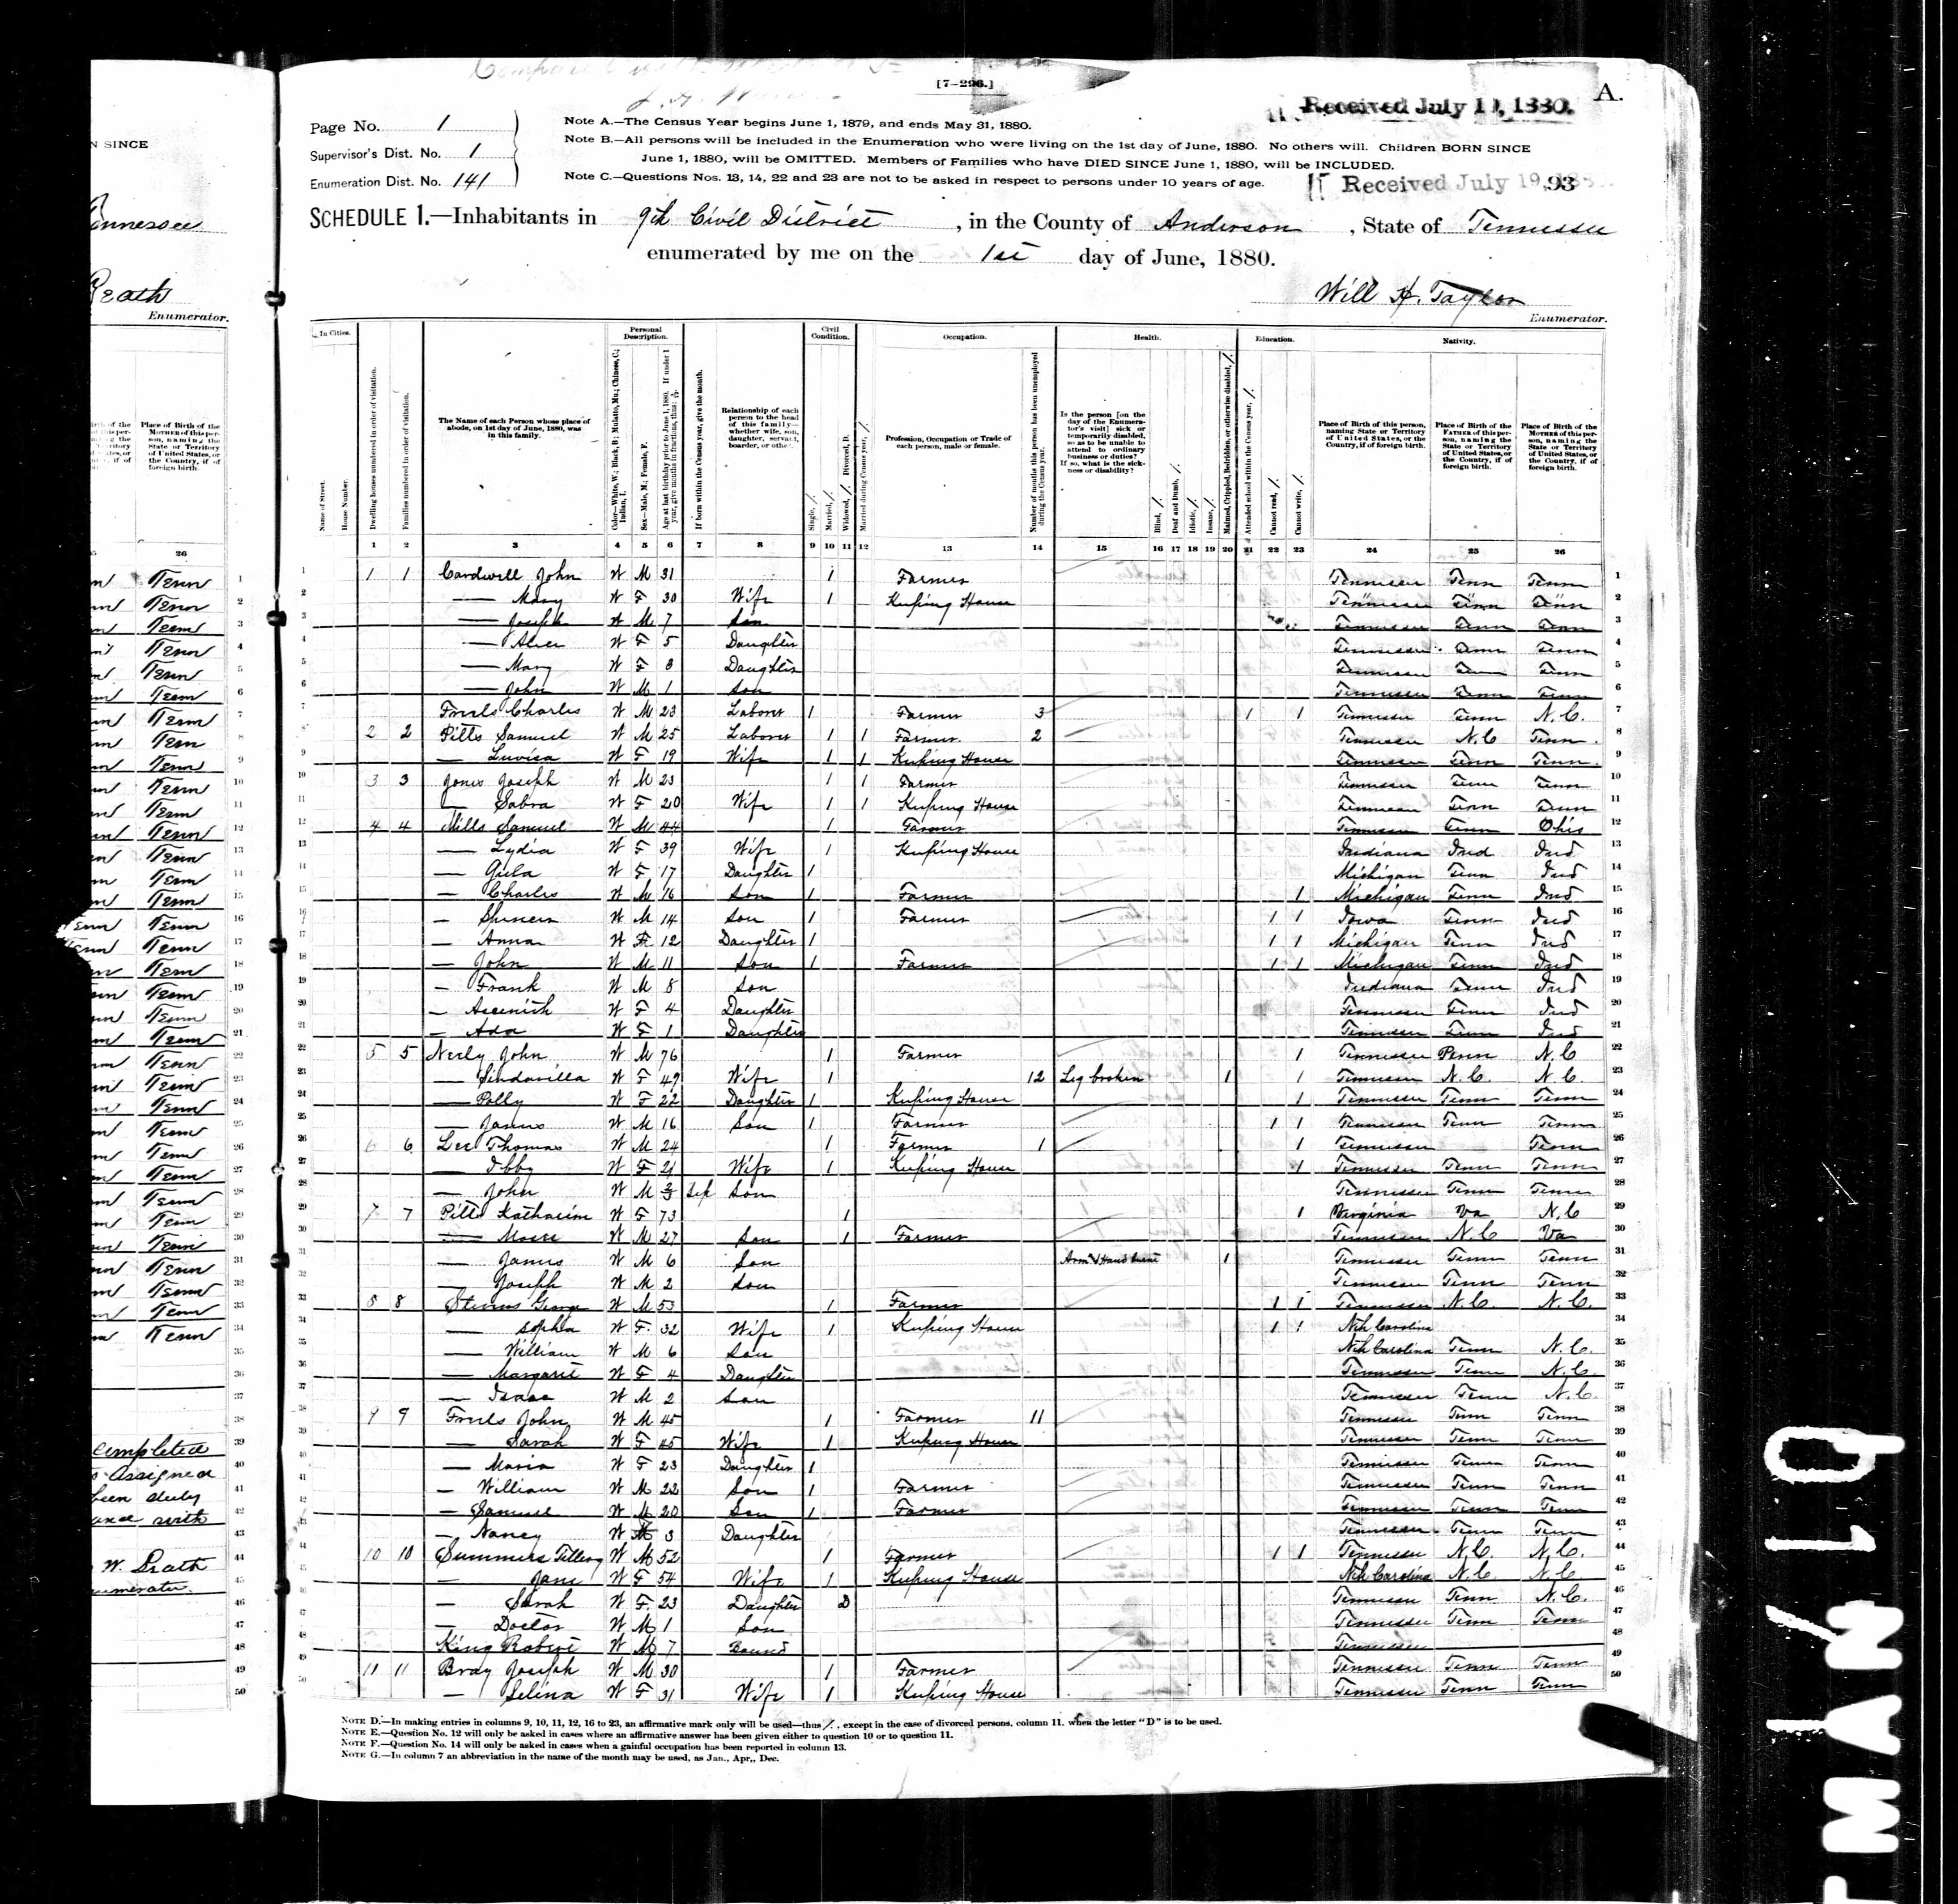 Graham Polly Farmer: 1880 Census, Anderson County, Tennessee